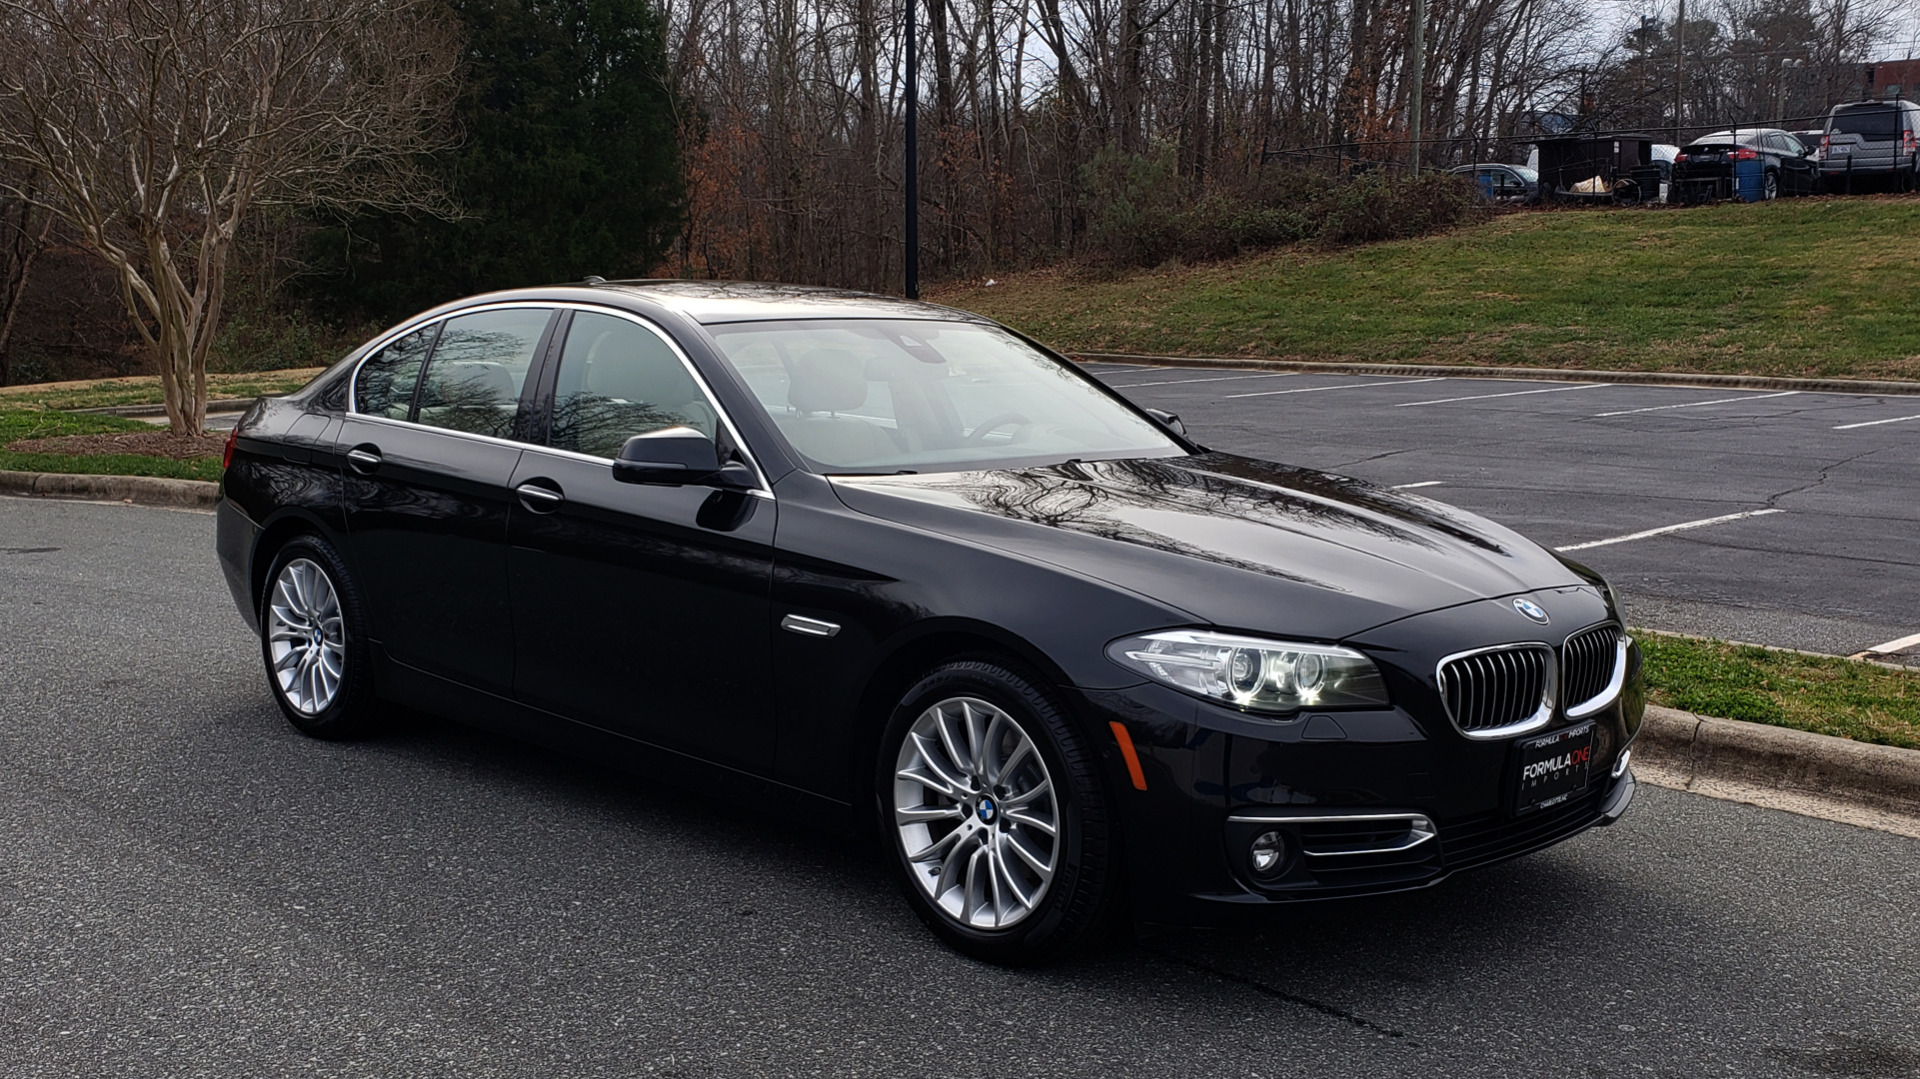 Used 2016 BMW 5 SERIES 528i XDRIVE / PREM PKG / DRVR ASST PLUS / LUXURY / COLD WTHR for sale Sold at Formula Imports in Charlotte NC 28227 11